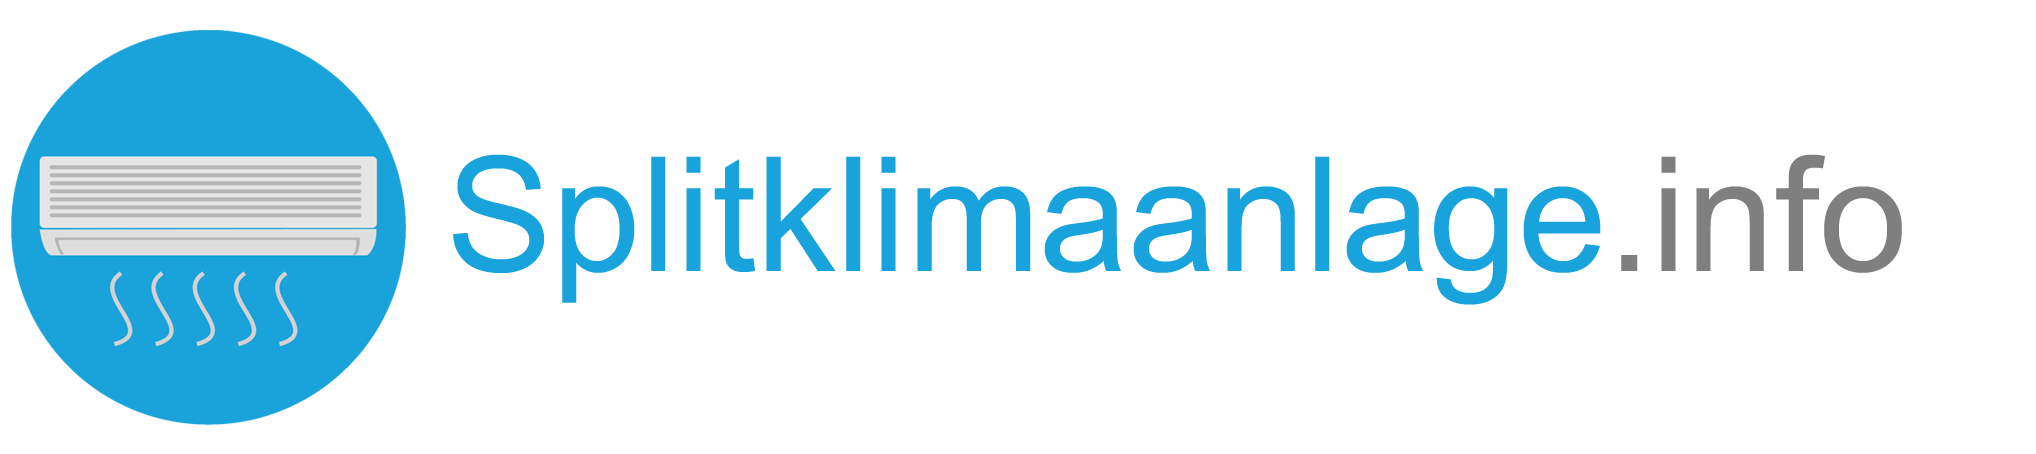 Splitklimaanlage